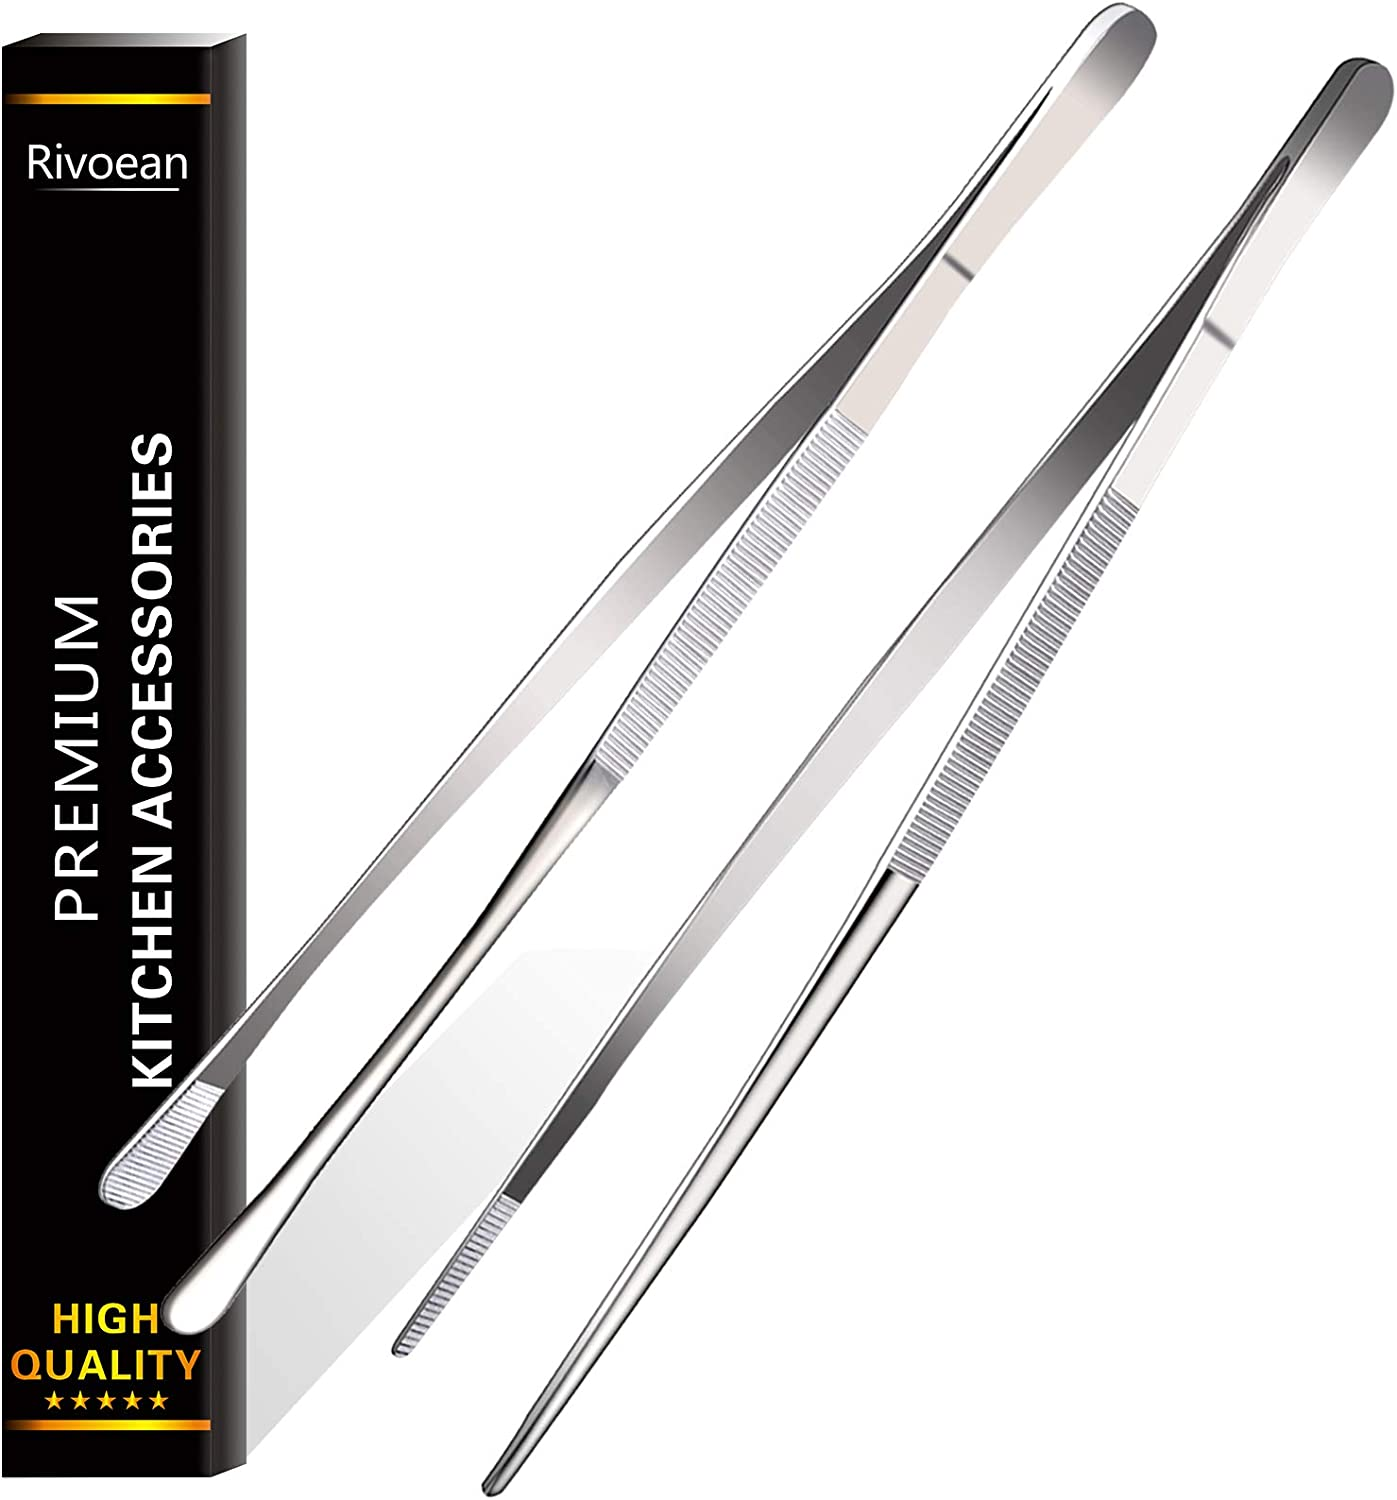 Rivoean 2 Pcs 12-Inch Fine Tweezer Tongs,Extra-Long Stainless Steel Tweezers Tongs